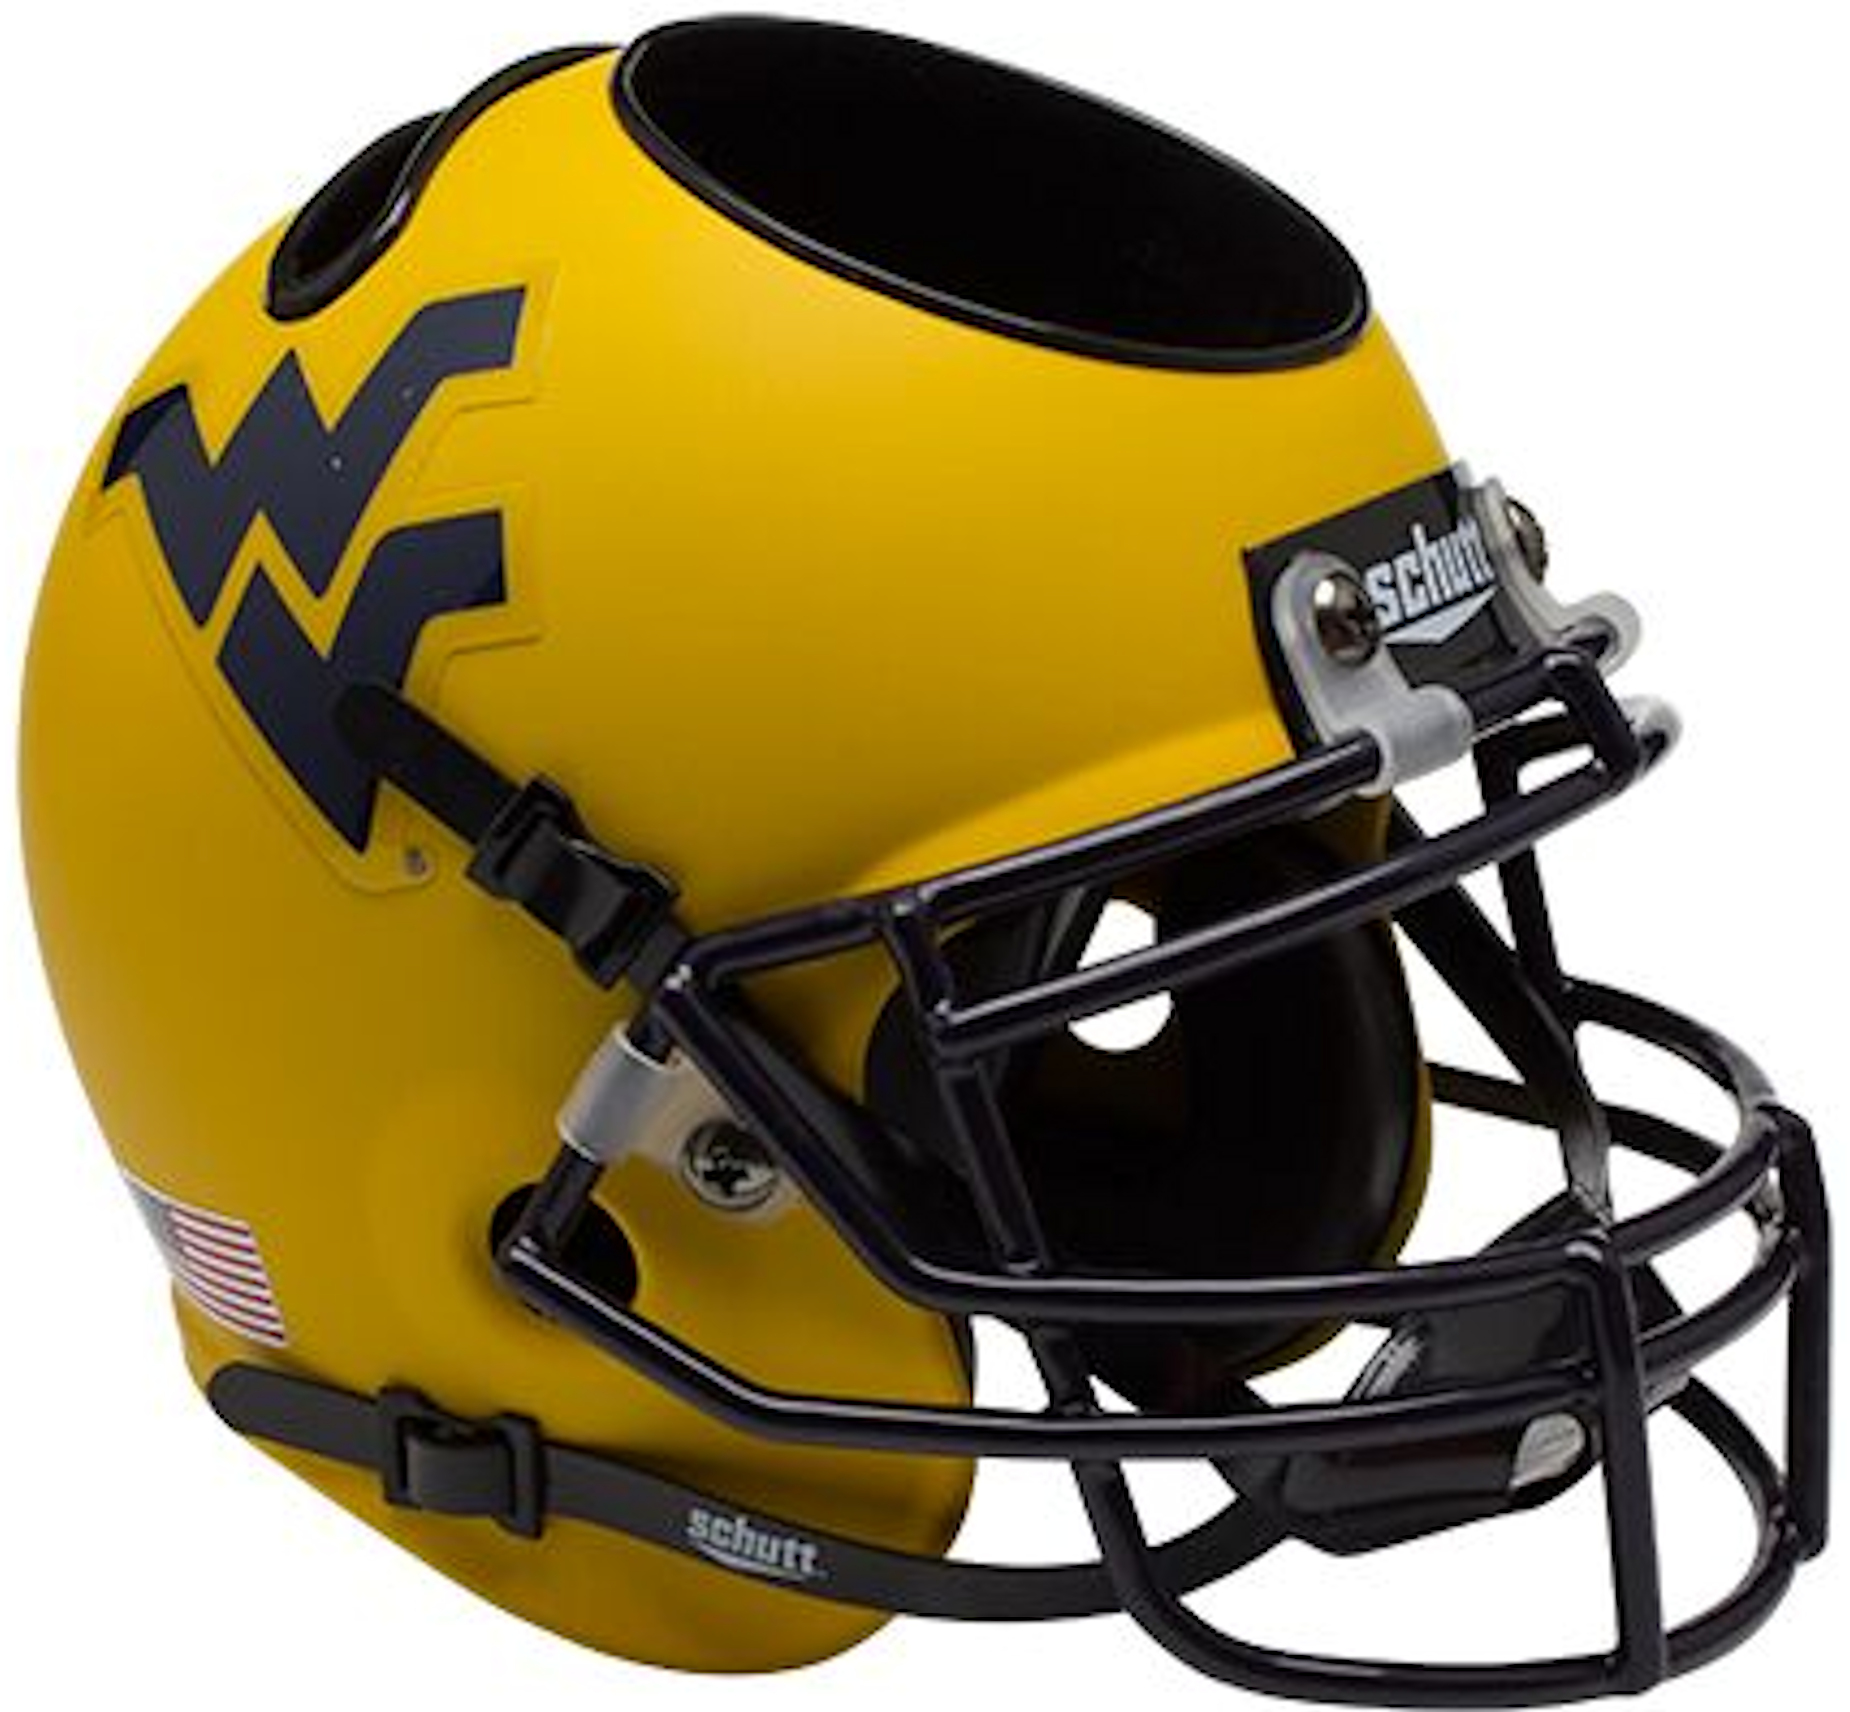 West Virginia Mountaineers Miniature Football Helmet Desk Caddy <B>Matte Gold</B>